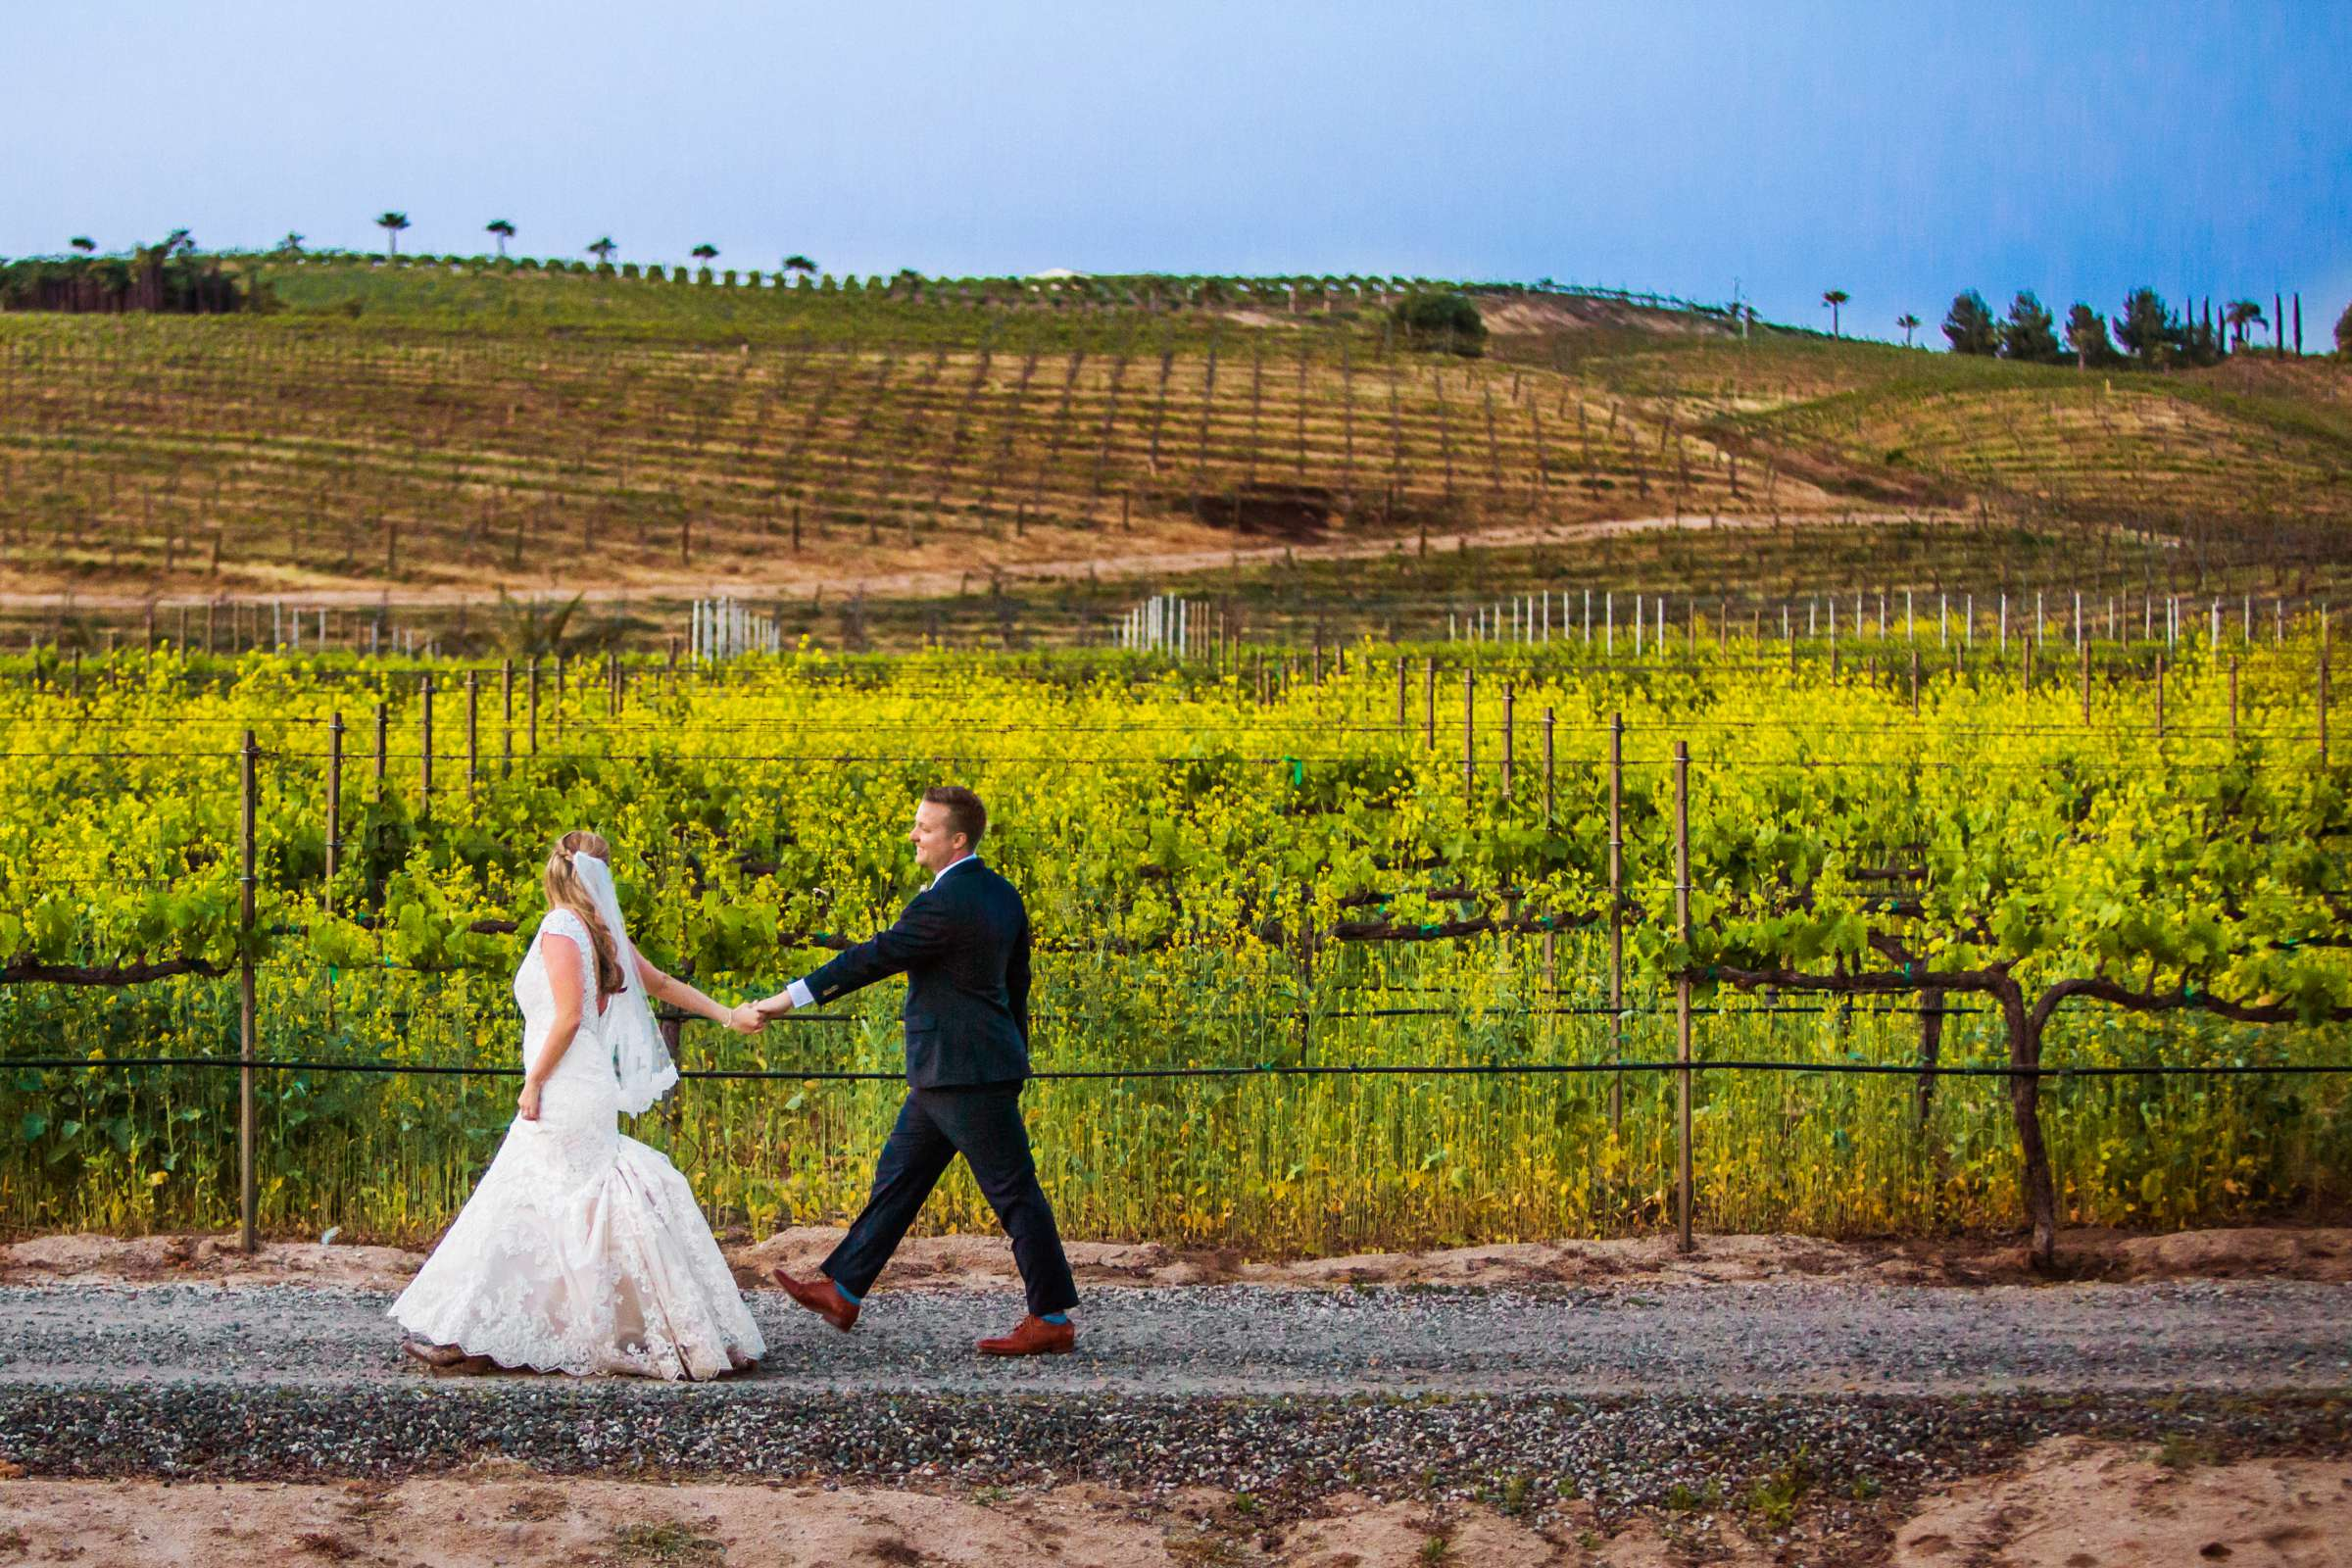 Peltzer Winery Wedding, Jaclyn and Nick Wedding Photo #140 by True Photography